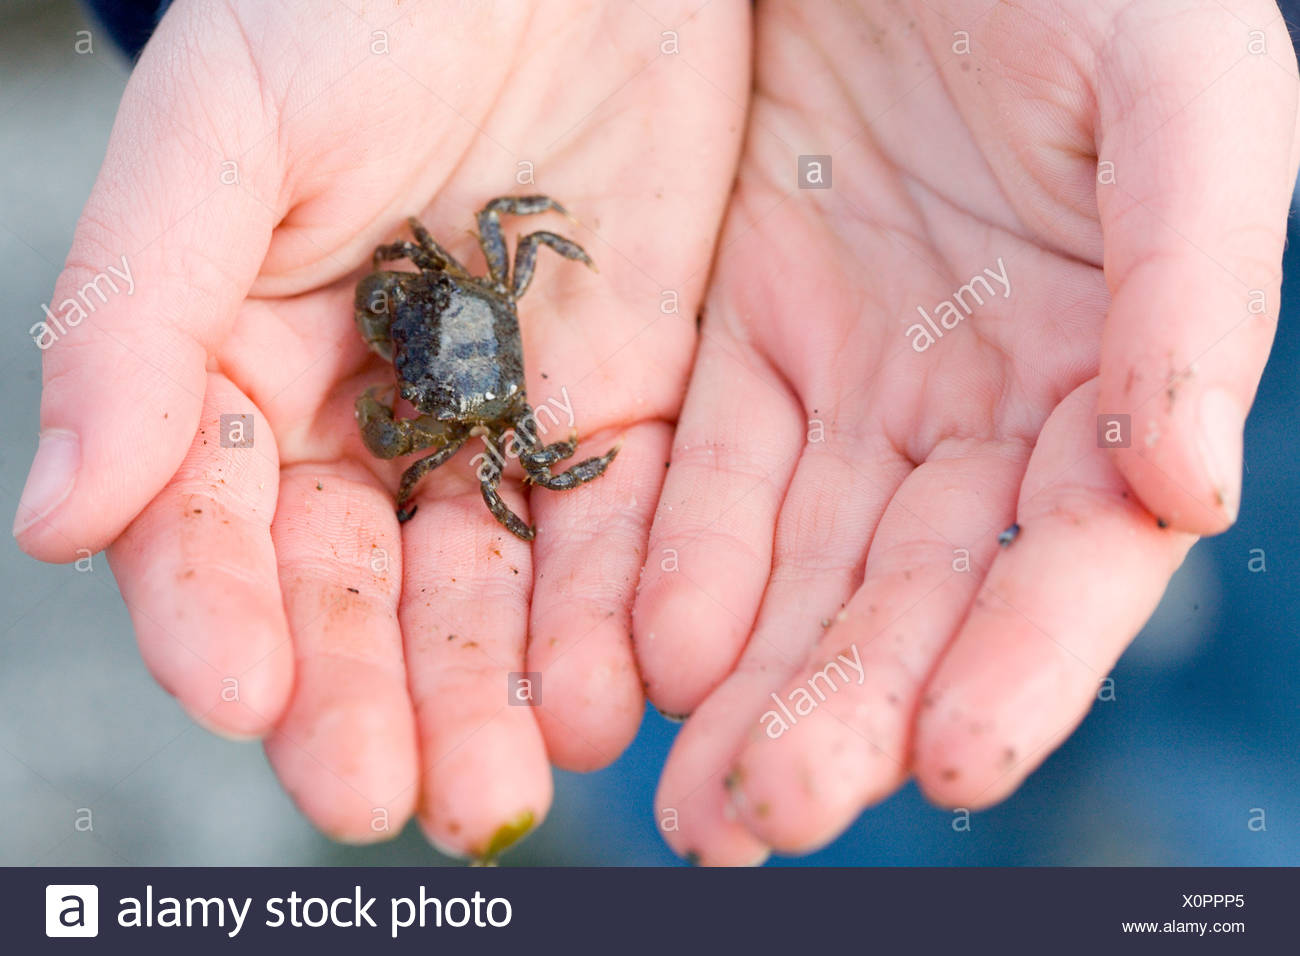 Human hand holding crabe, close-up Photo Stock